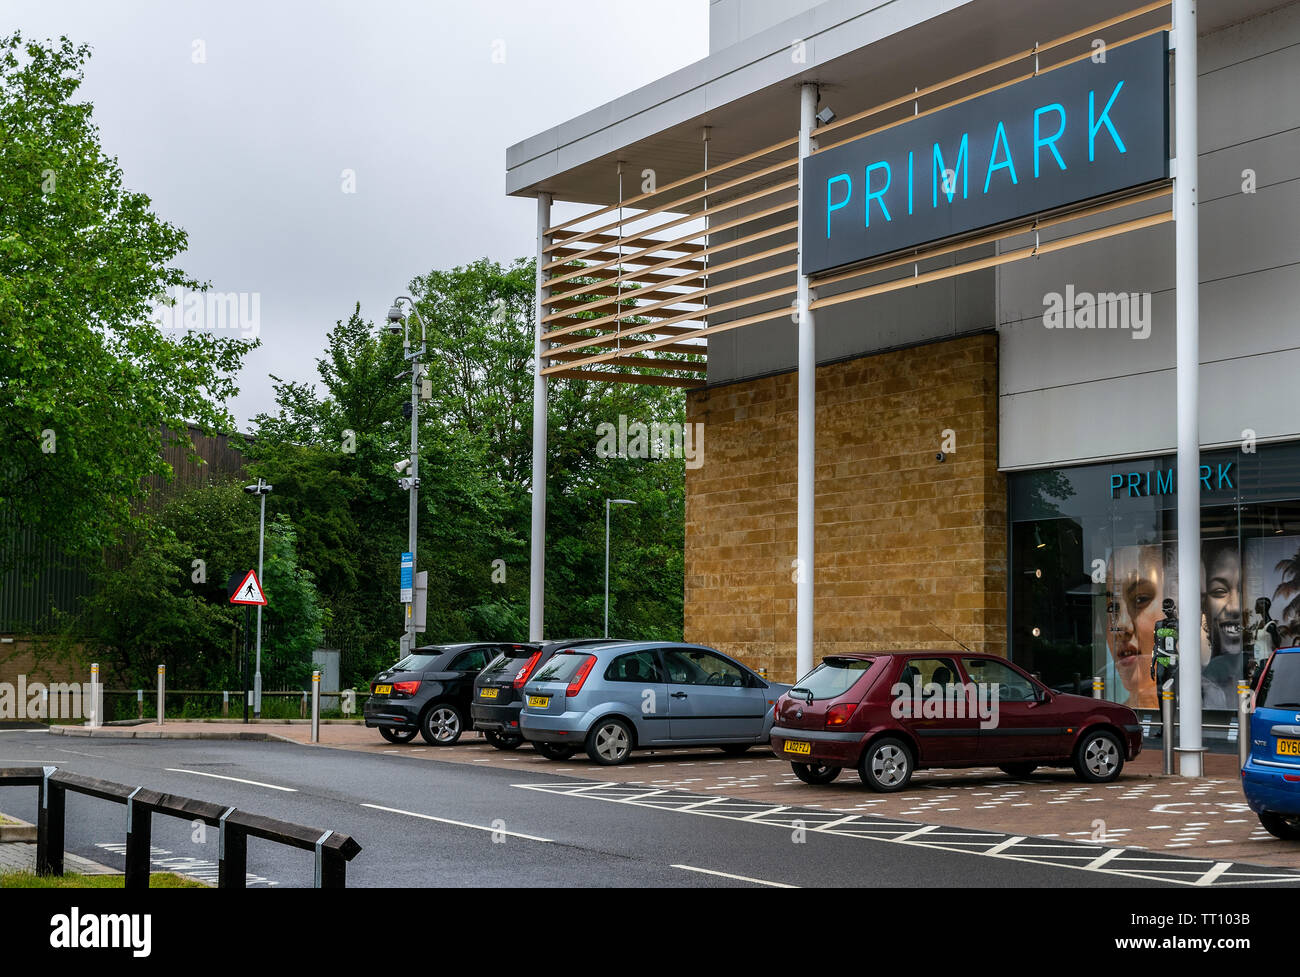 A view of the Gateway Shopping centre which is in Banbury, Oxfordshire, England, UK - Stock Image